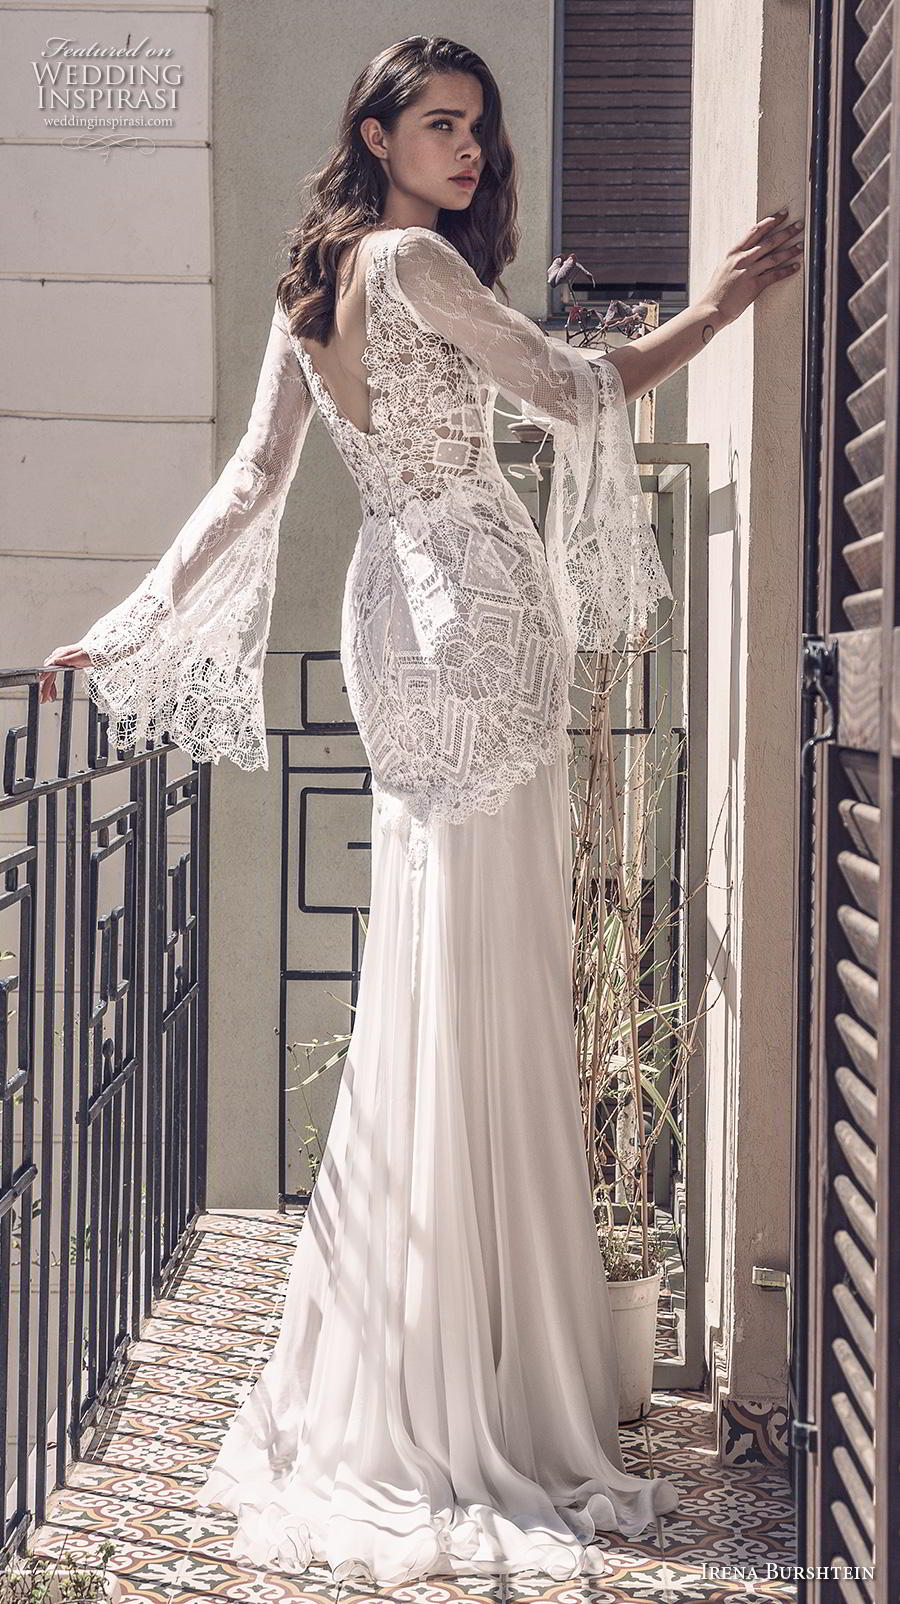 irena burshtein 2020 bridal long bell sleeves v neck heavily embellished bodice bohemian sheath wedding dress v back sweep train (3) bv